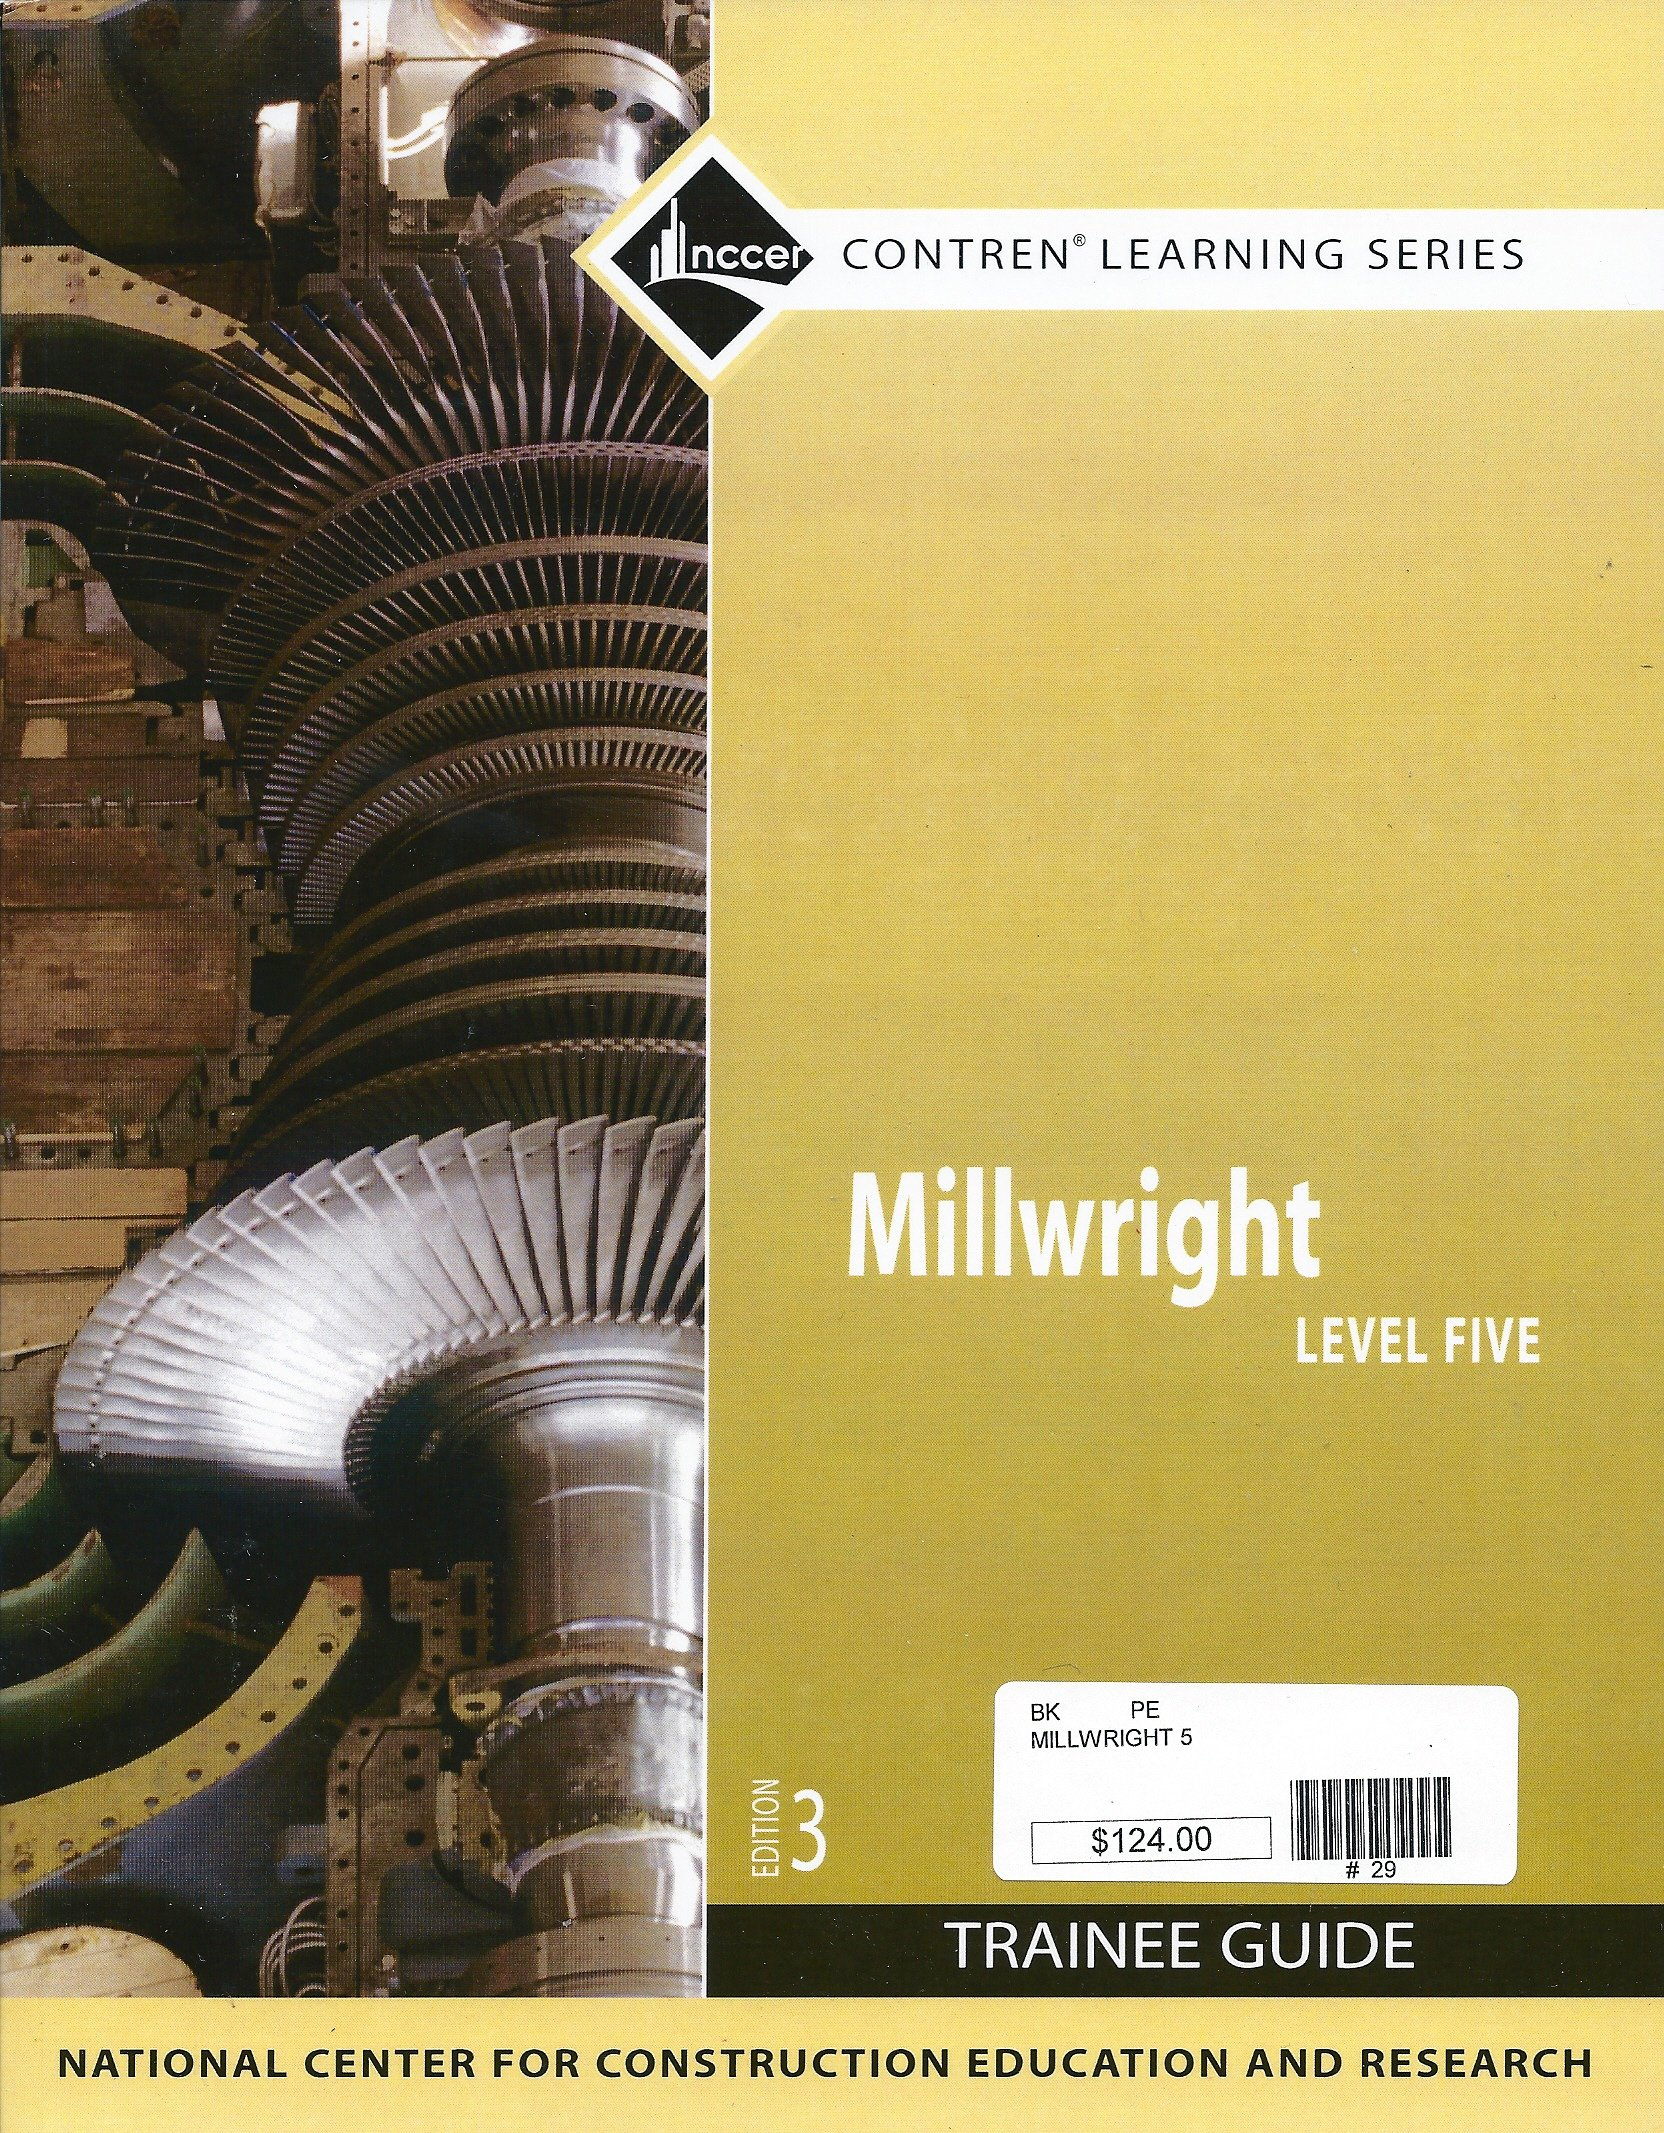 Millwright Level 5 Trainee Guide, Paperback (3rd Edition): NCCER:  9780136099604: Books - Amazon.ca